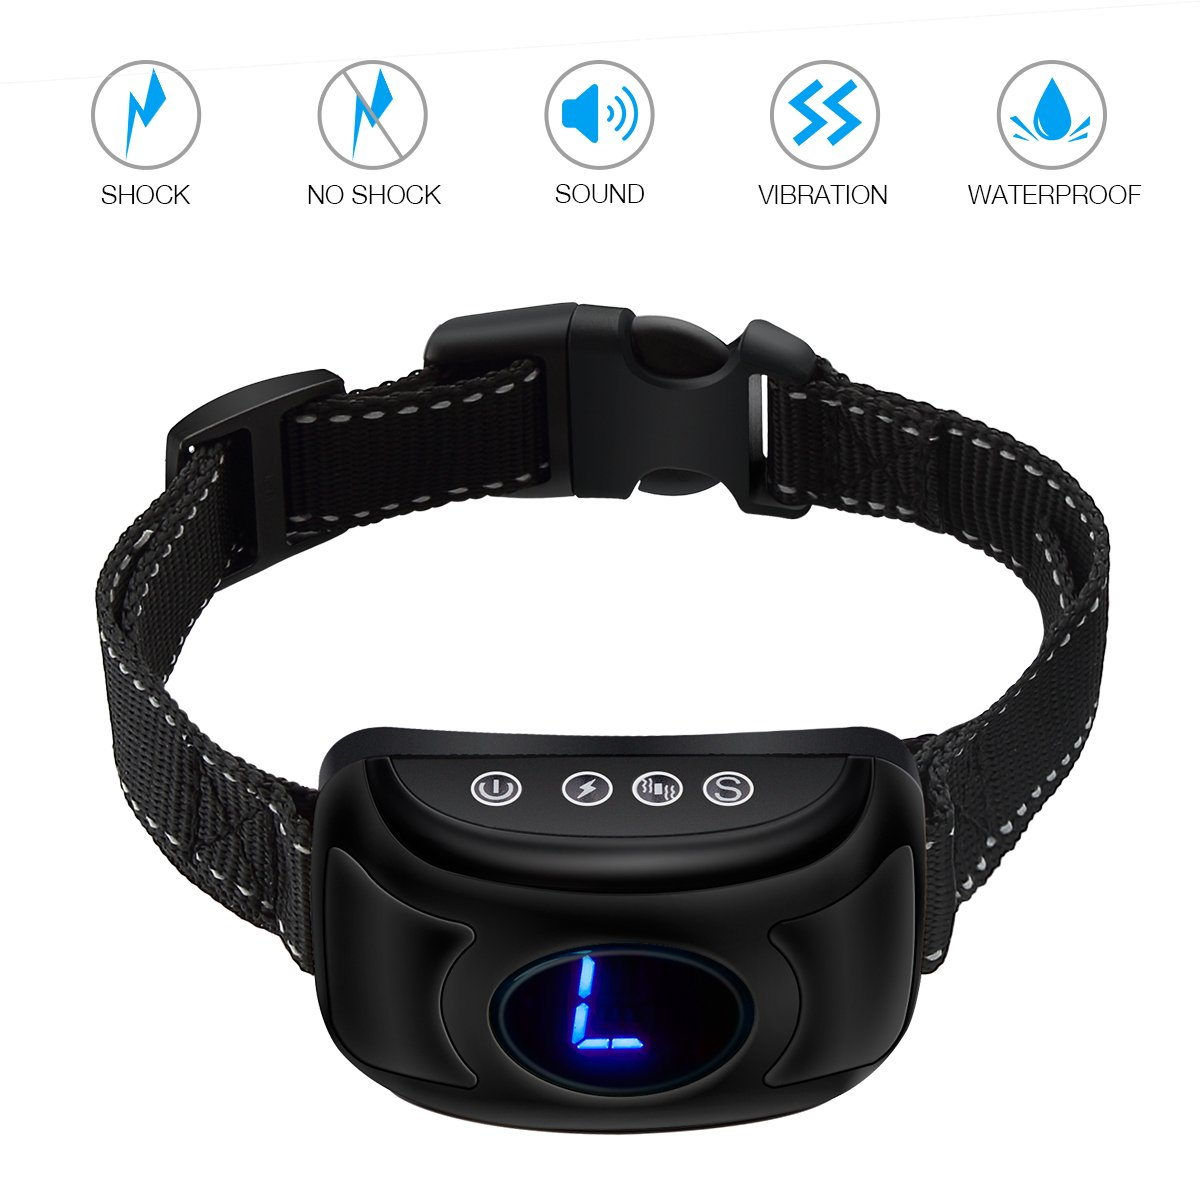 isYoung Bark Collar No Shock Bark Control with Sound and Vibration,Harmless and Humane,2018 Upgraded Rechargeable No Bark Collar with Smart Chip for Small Medium Large Dogs(Black)